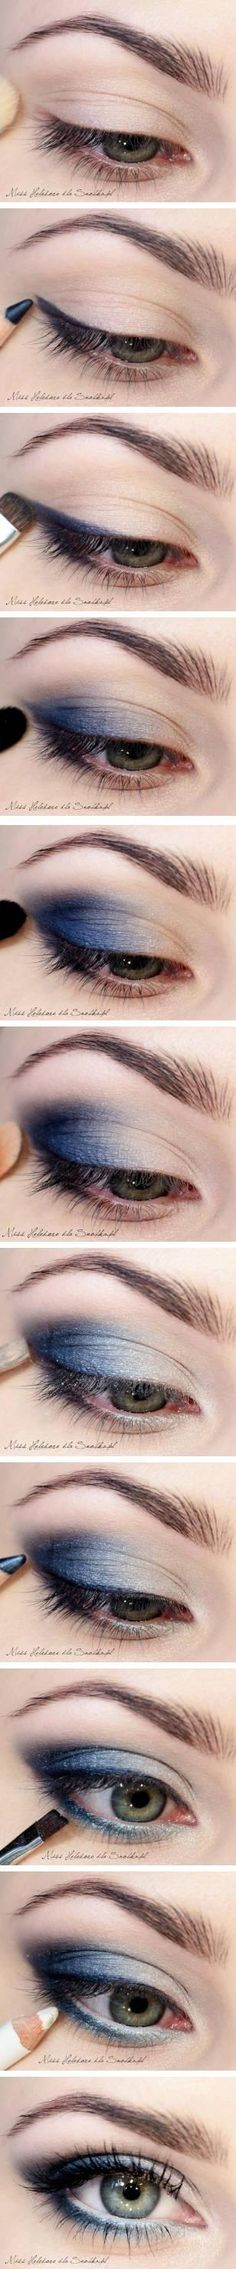 Blue Smokey Eye : For upcominng Urban Girl Culture Shoot